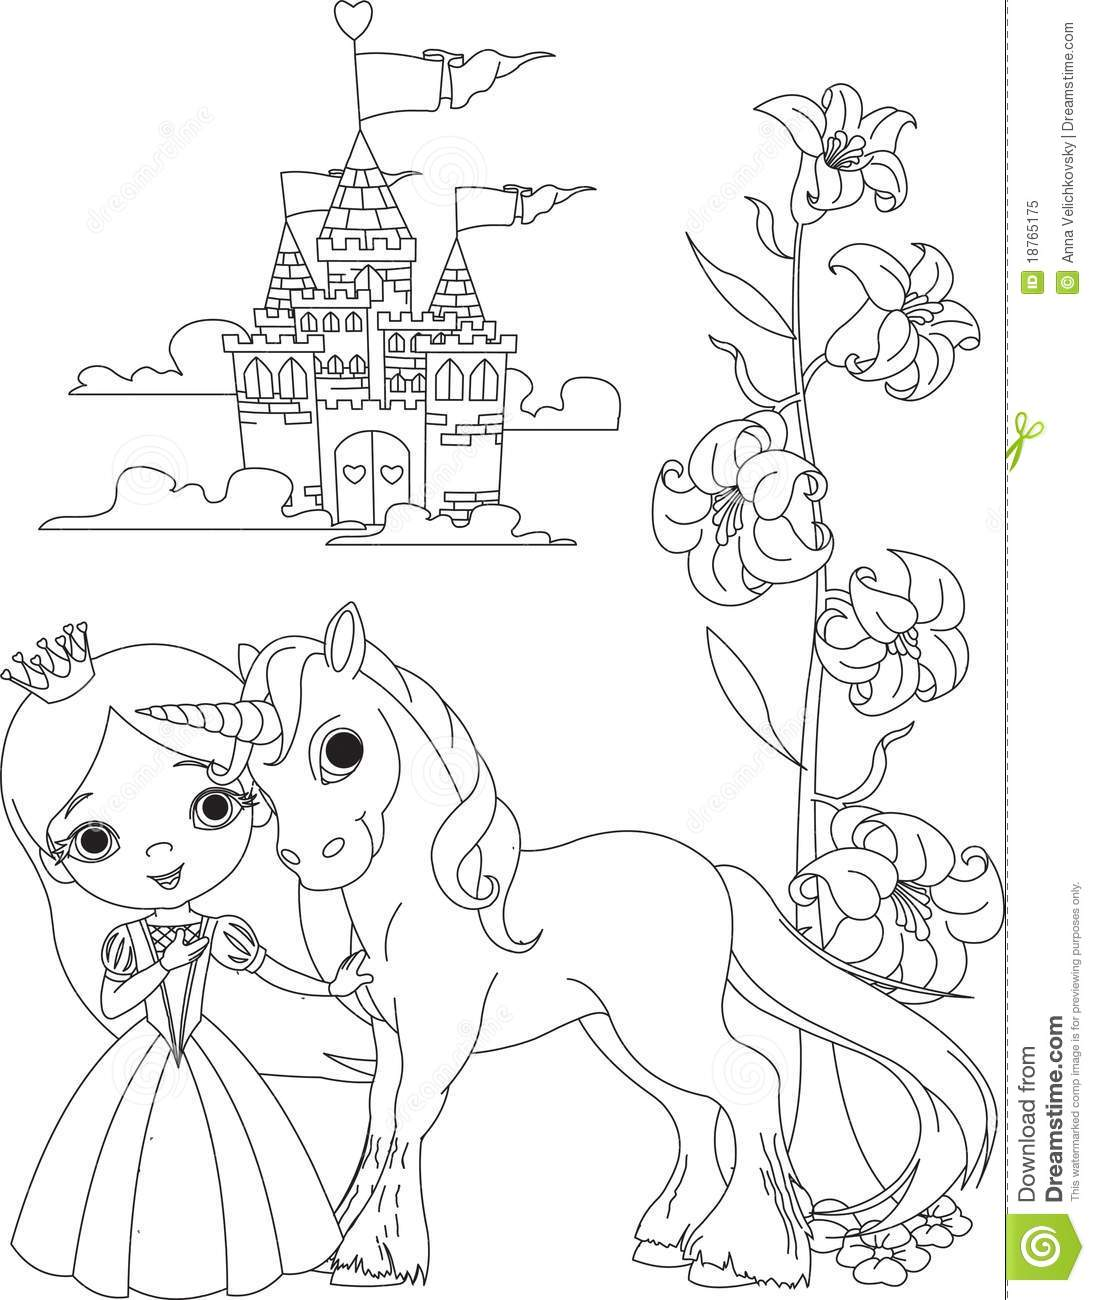 beautiful princess and unicorn coloring page royalty free stock